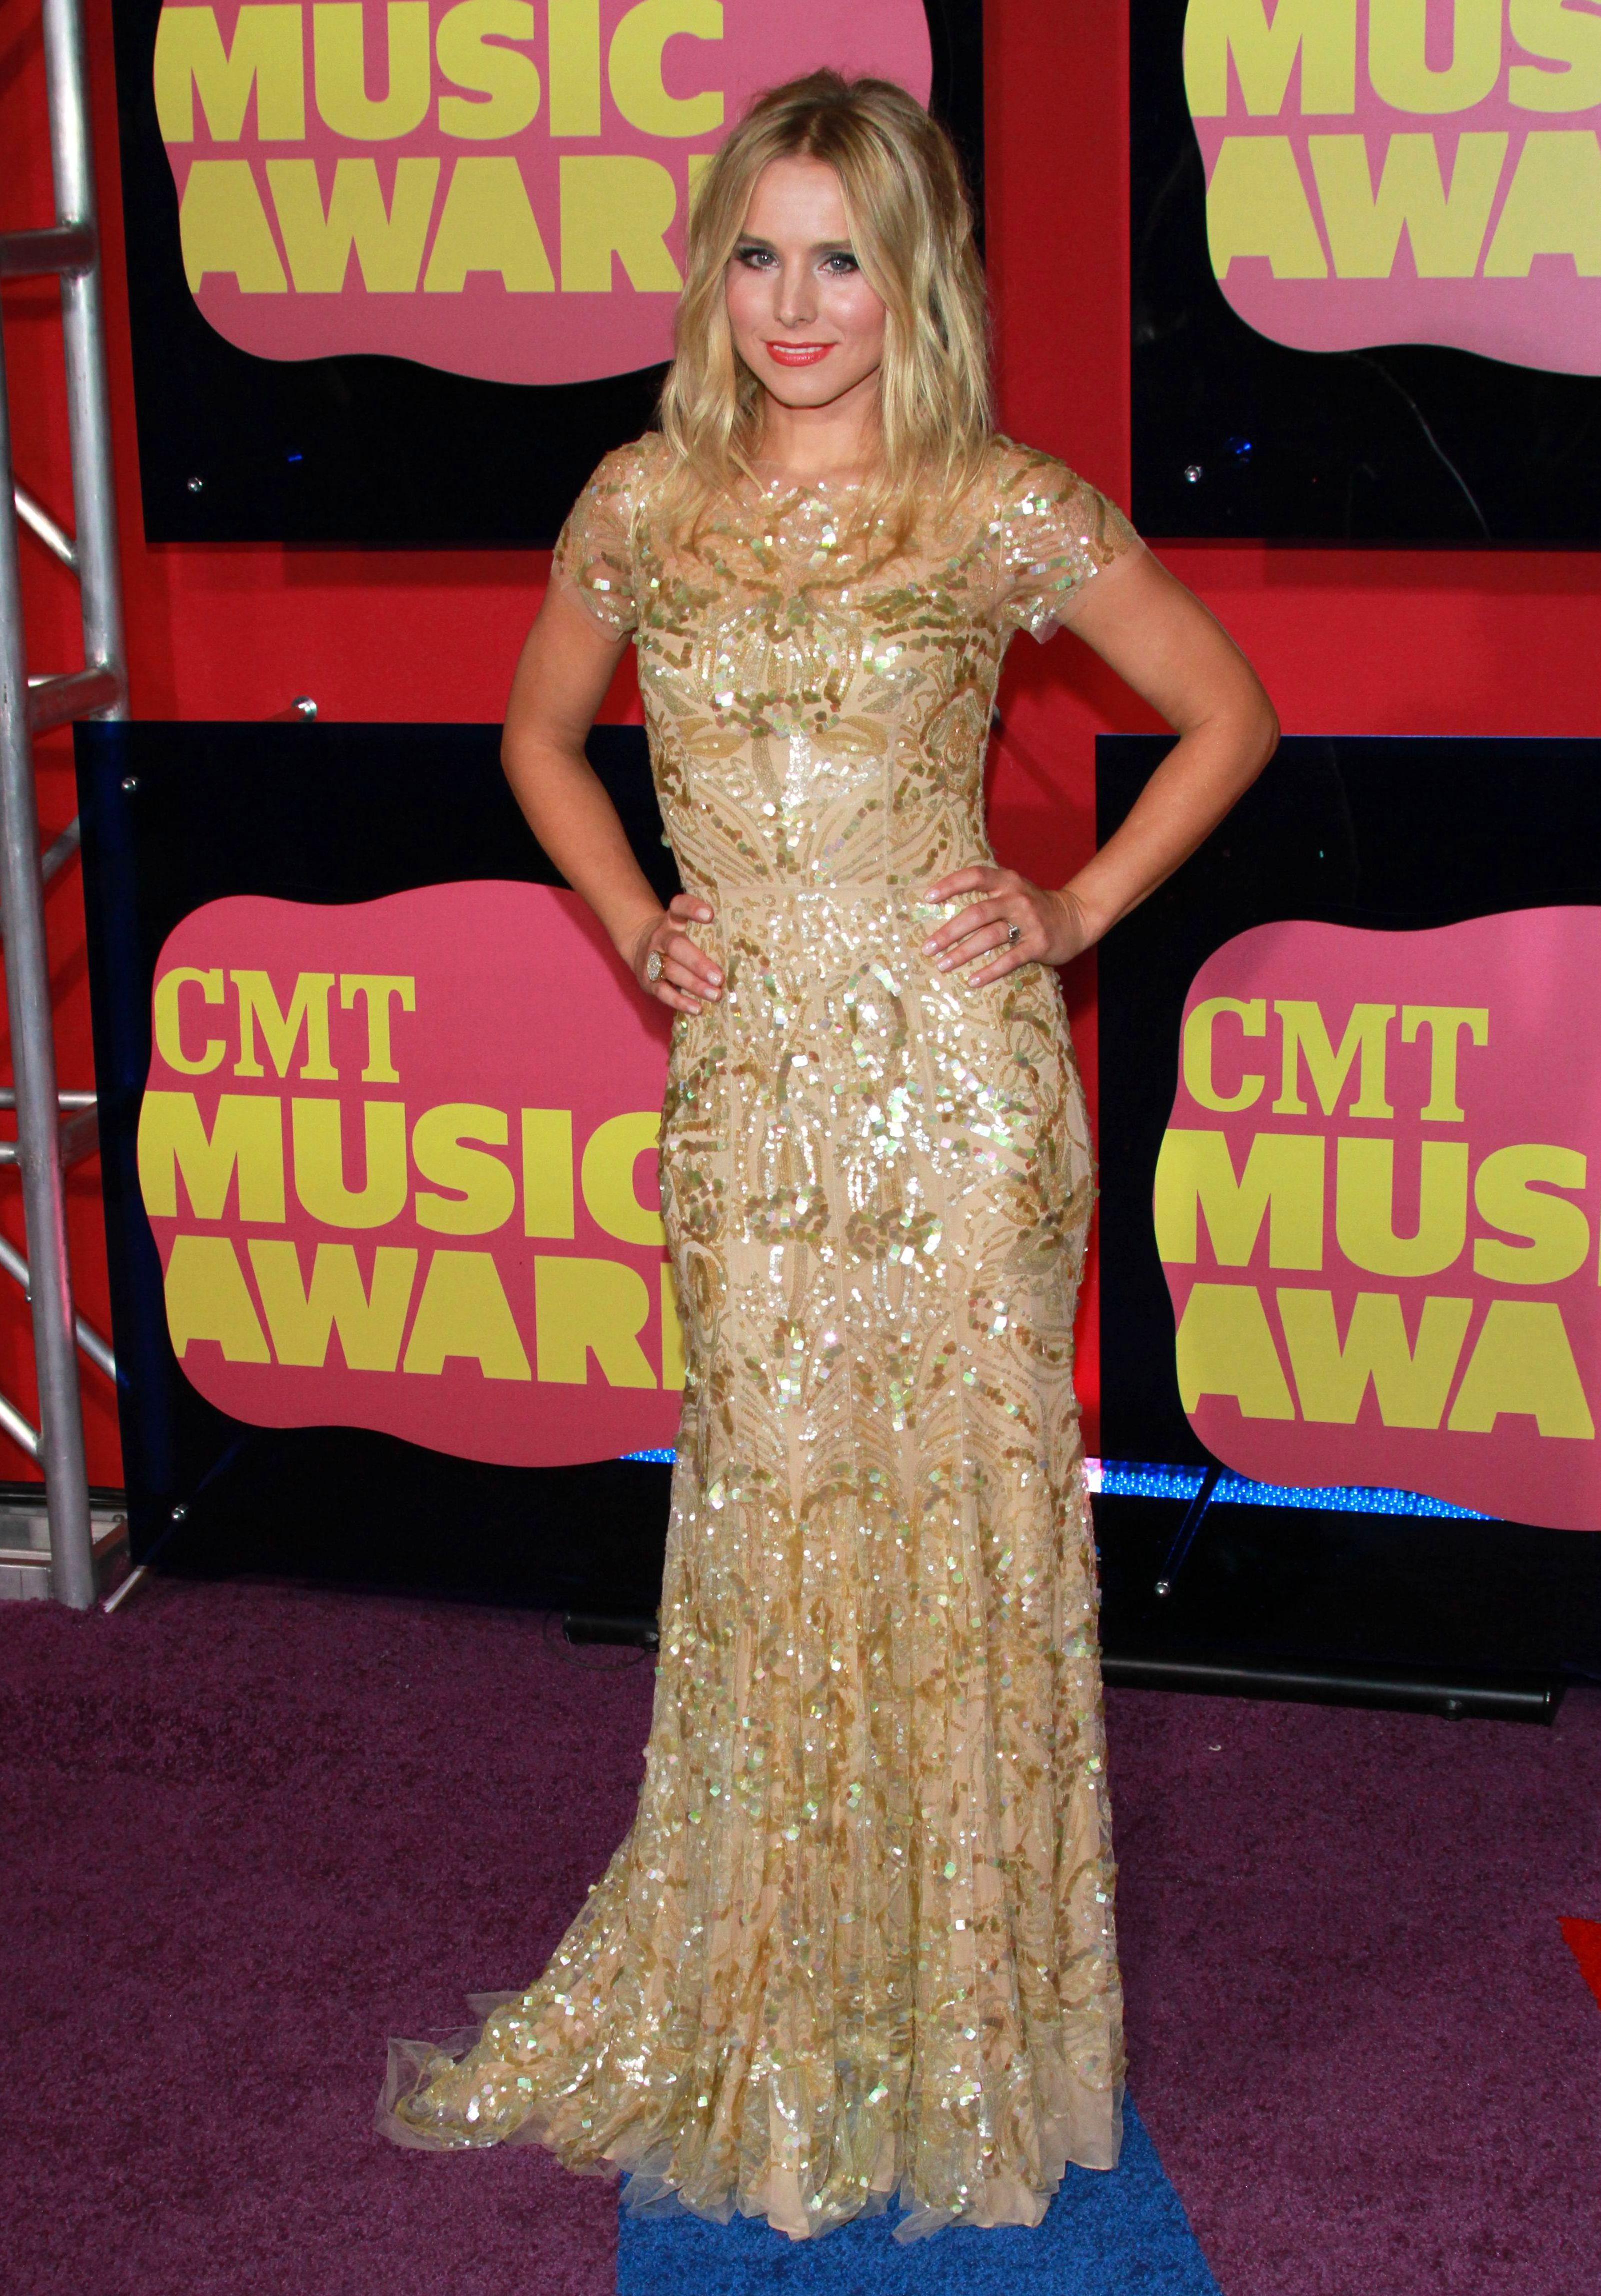 Kristen Bell attends the CMT Music Awards in Nashville, Tennessee, on June 6, 2012.